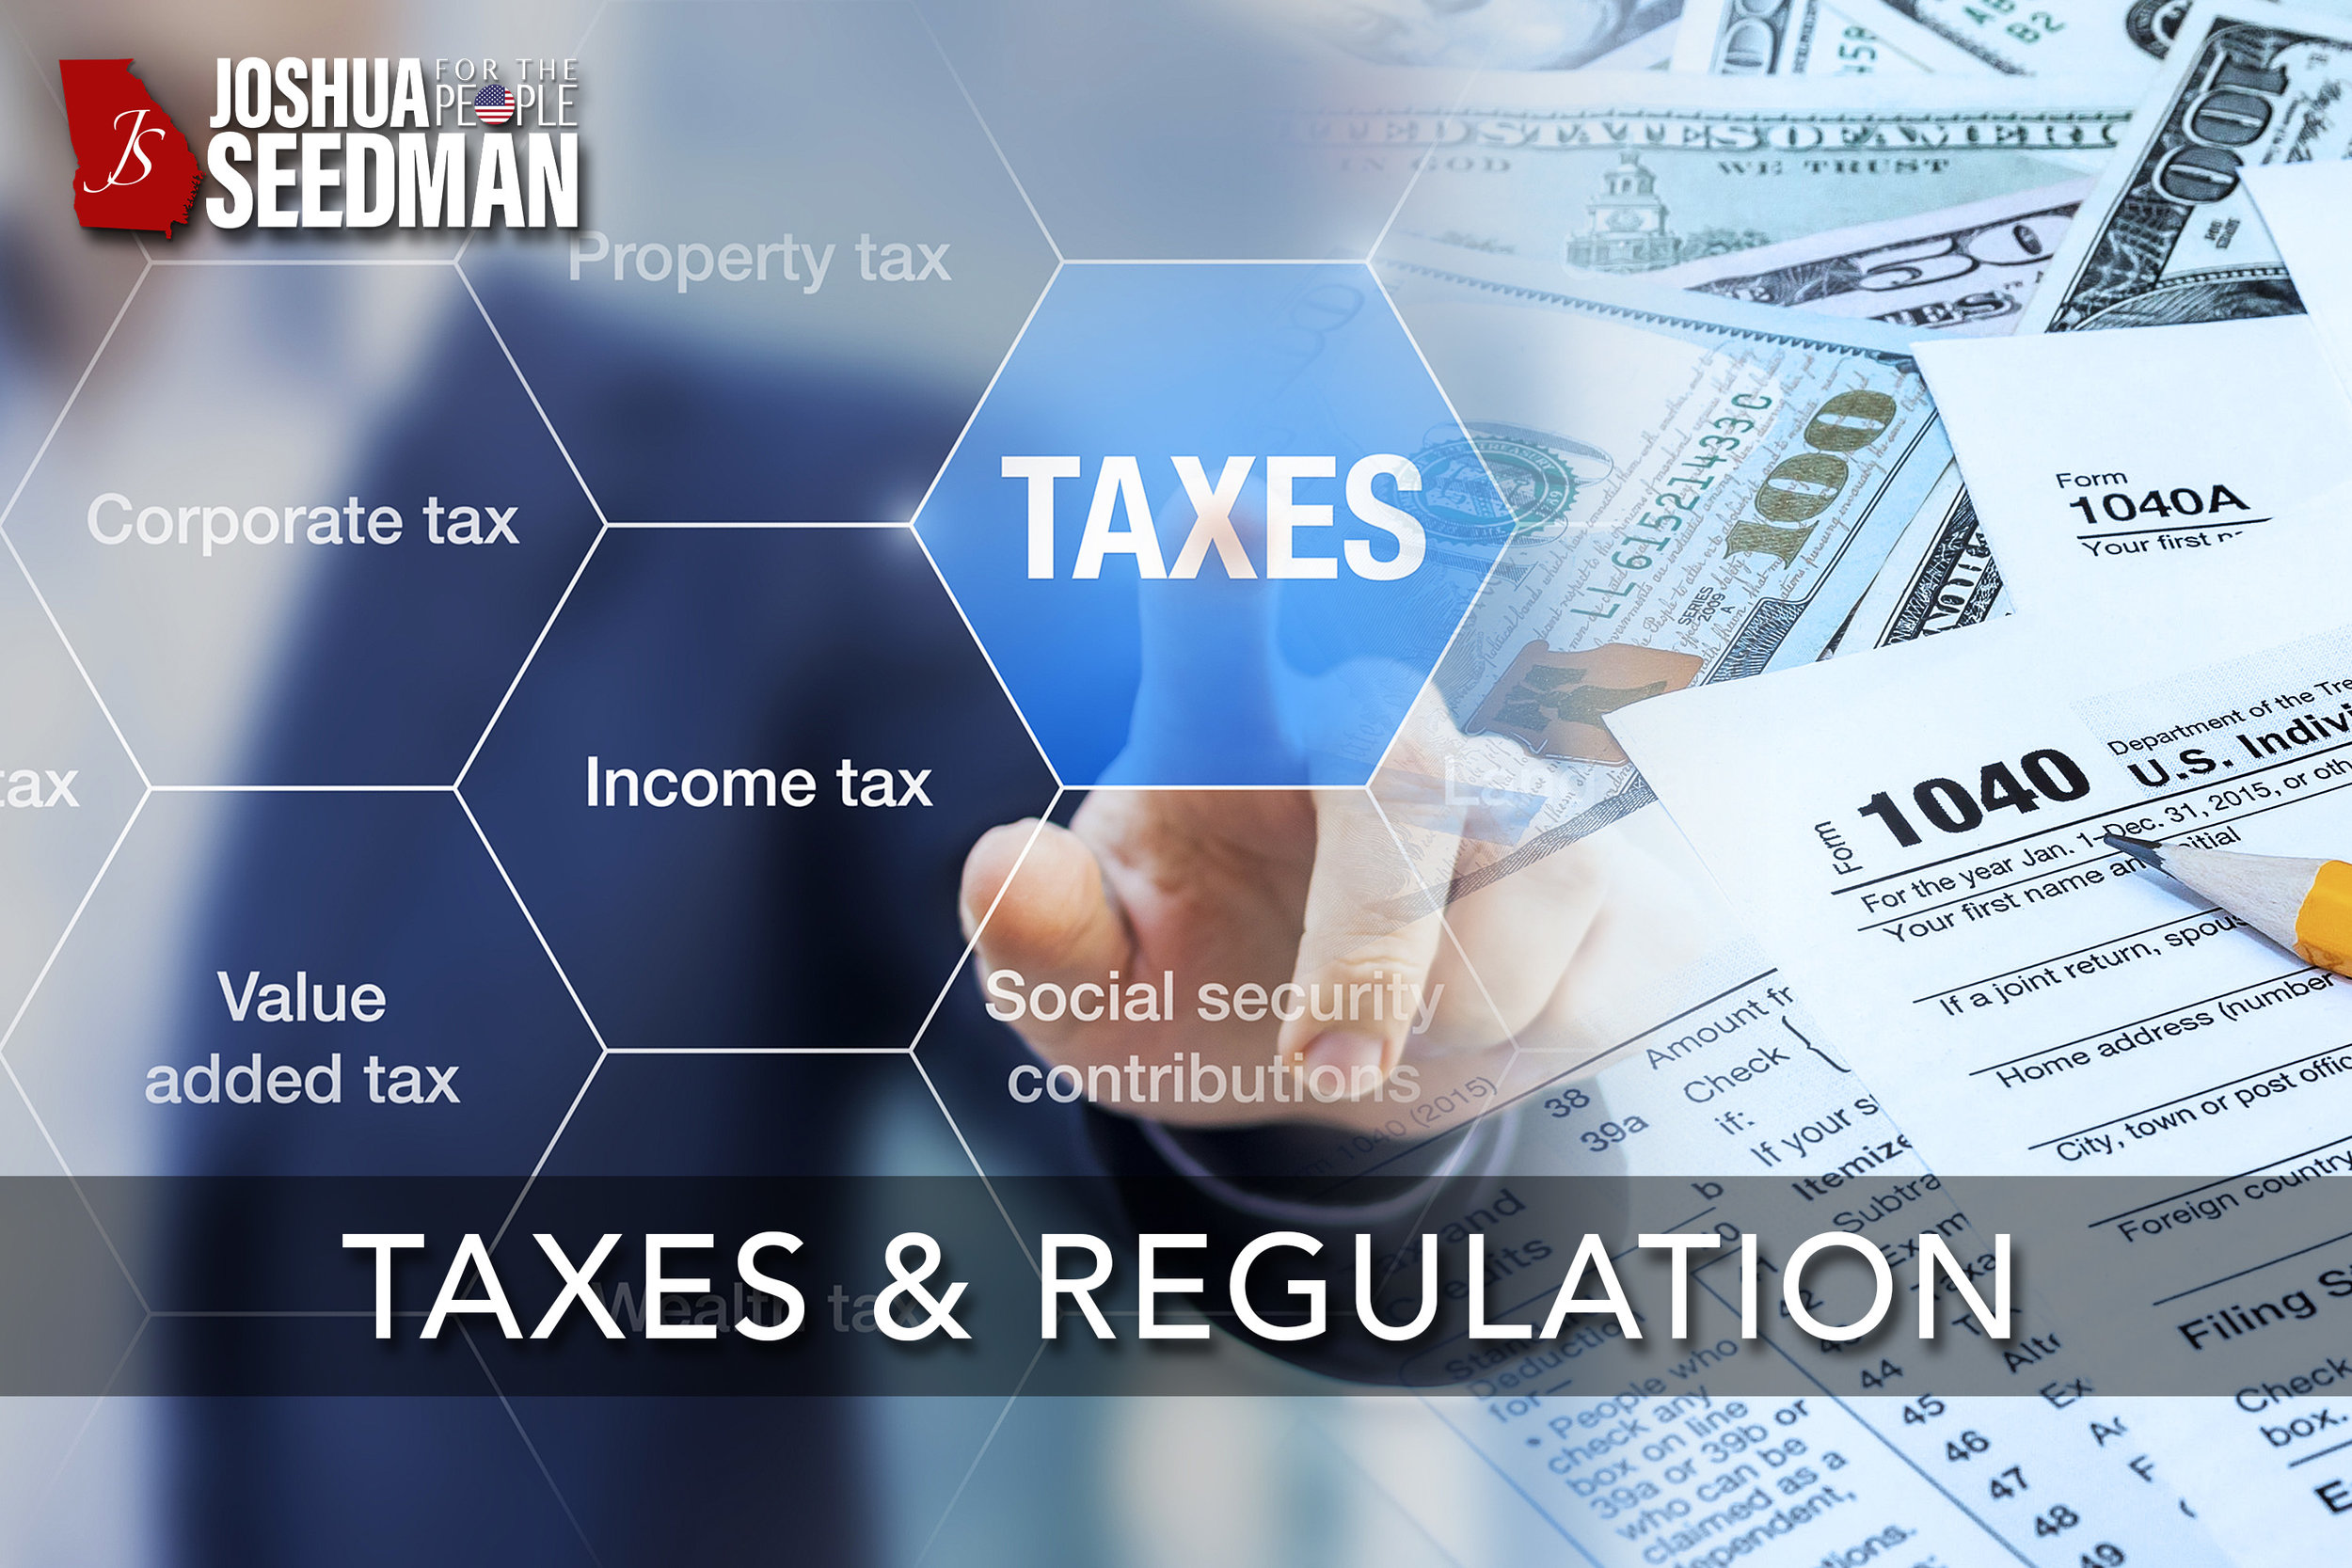 Taxes and Regulation.jpg